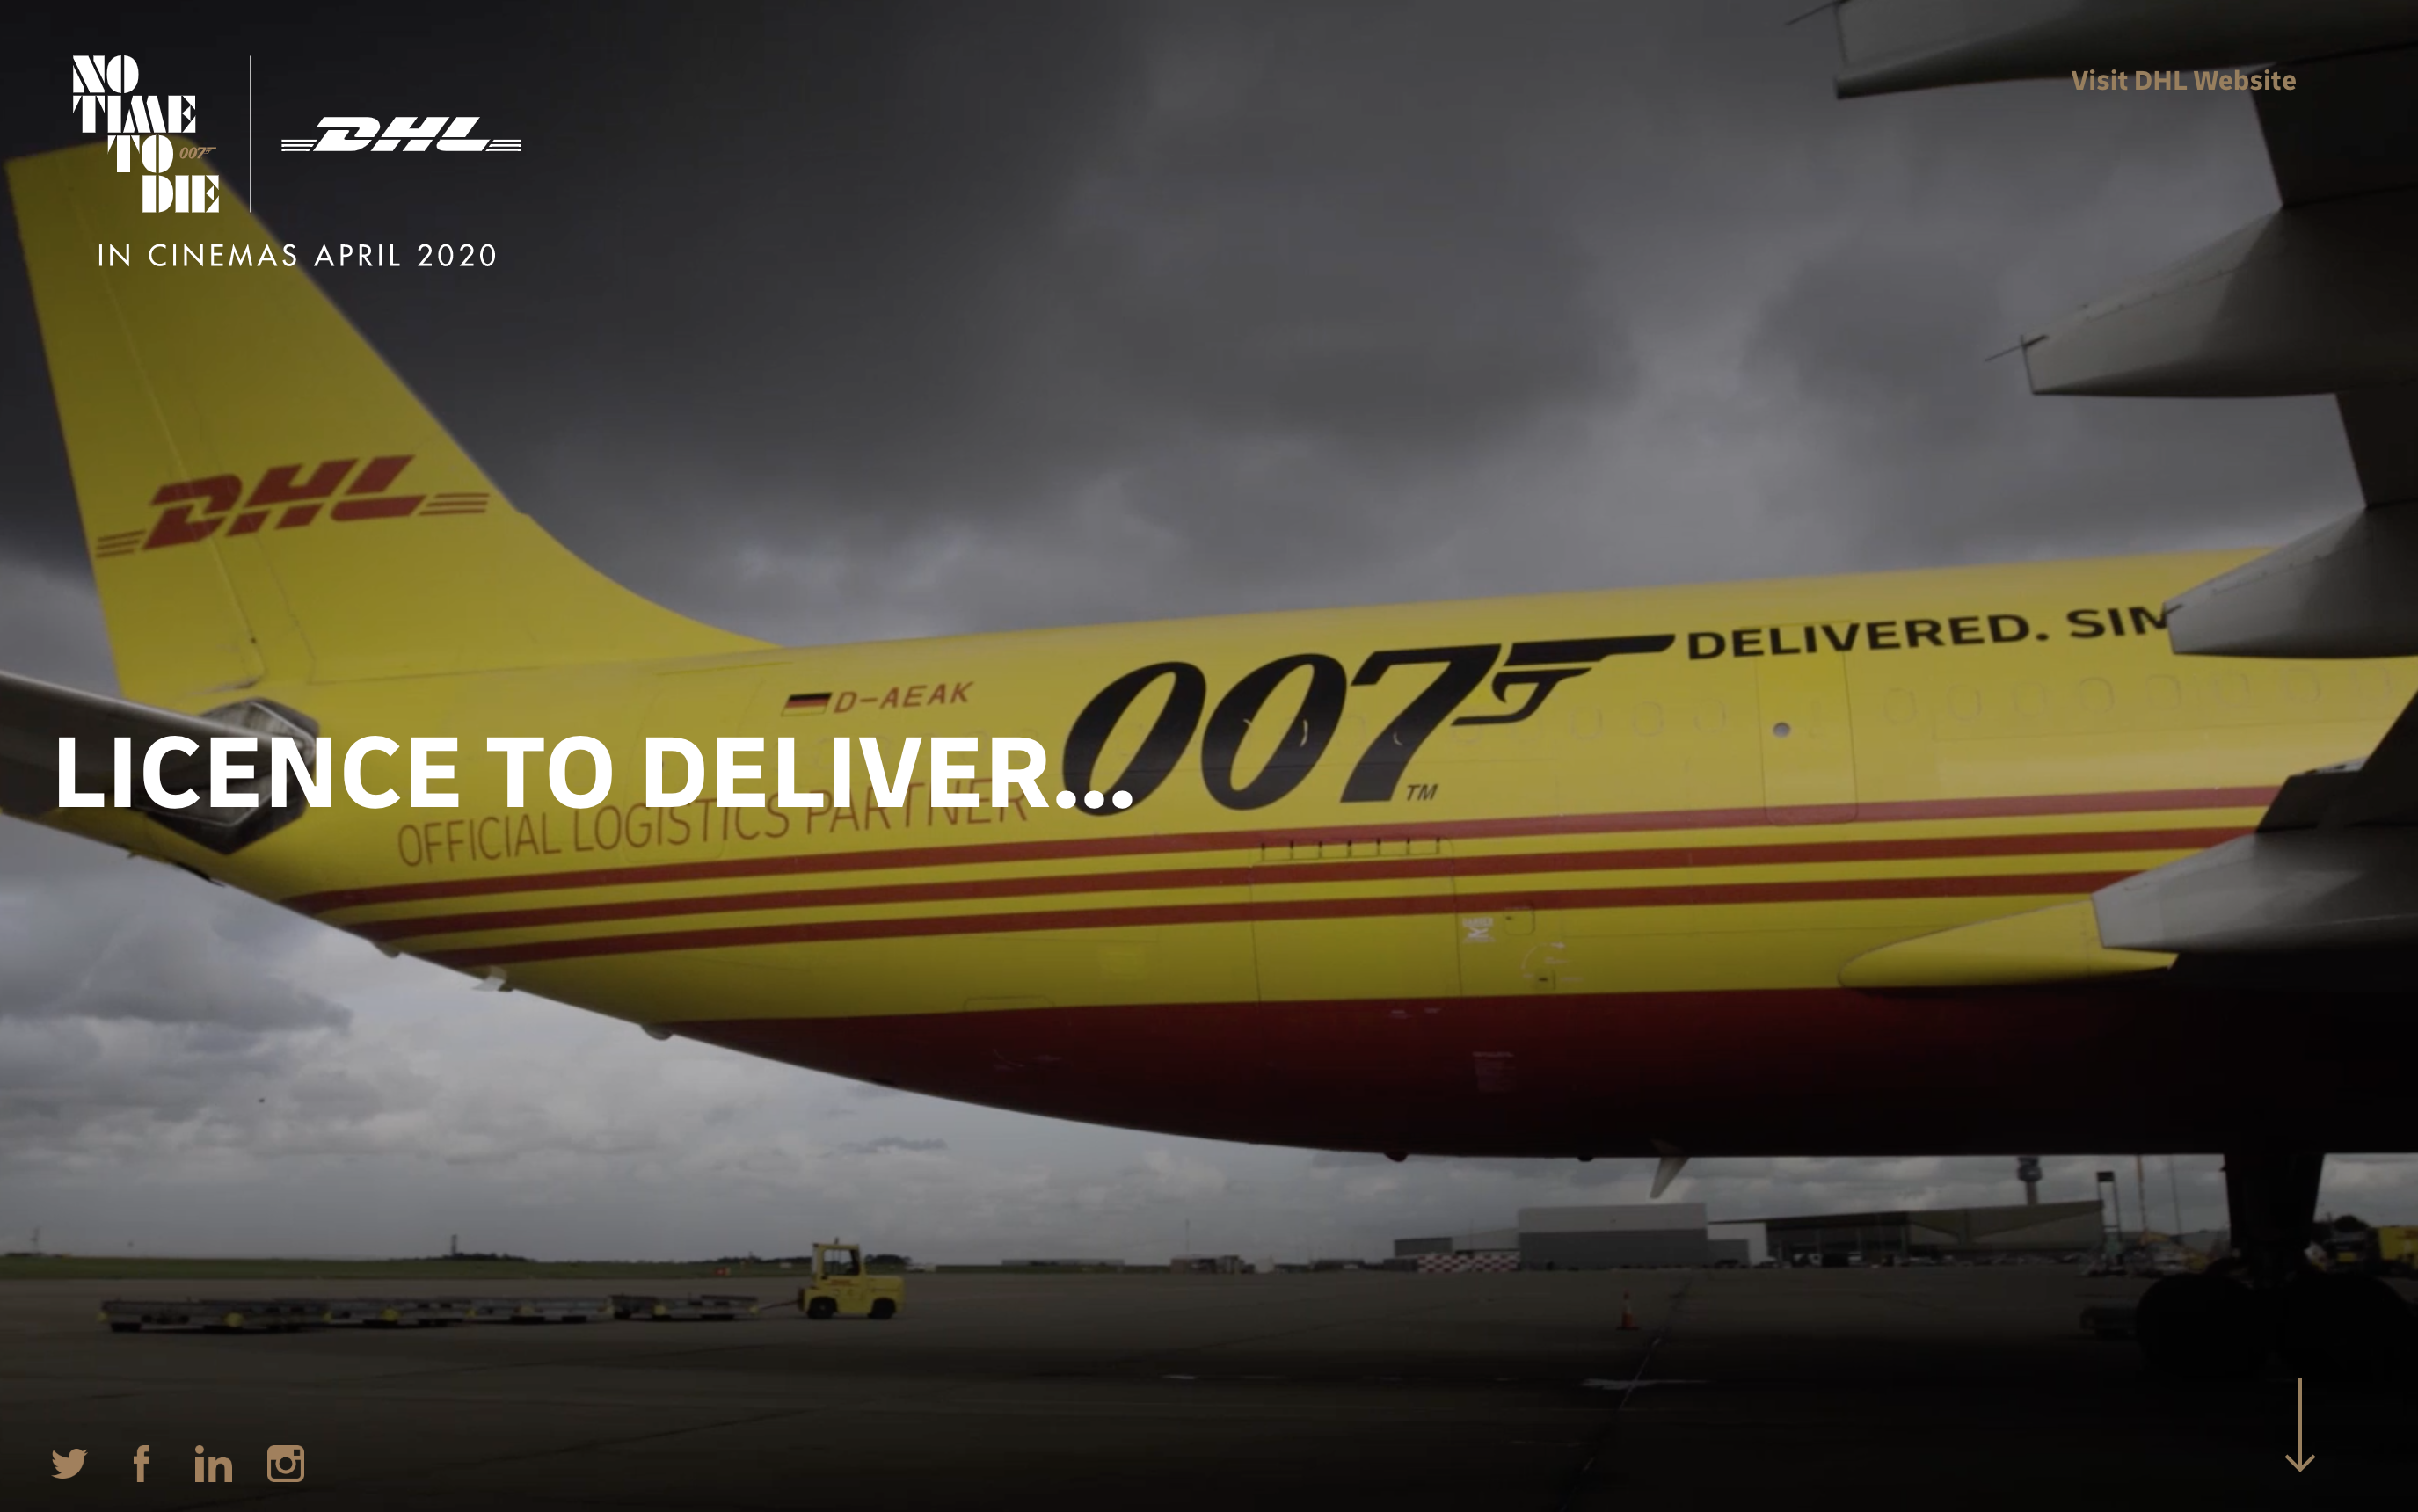 DHL's huge promotion with the new James Bond film in 2020